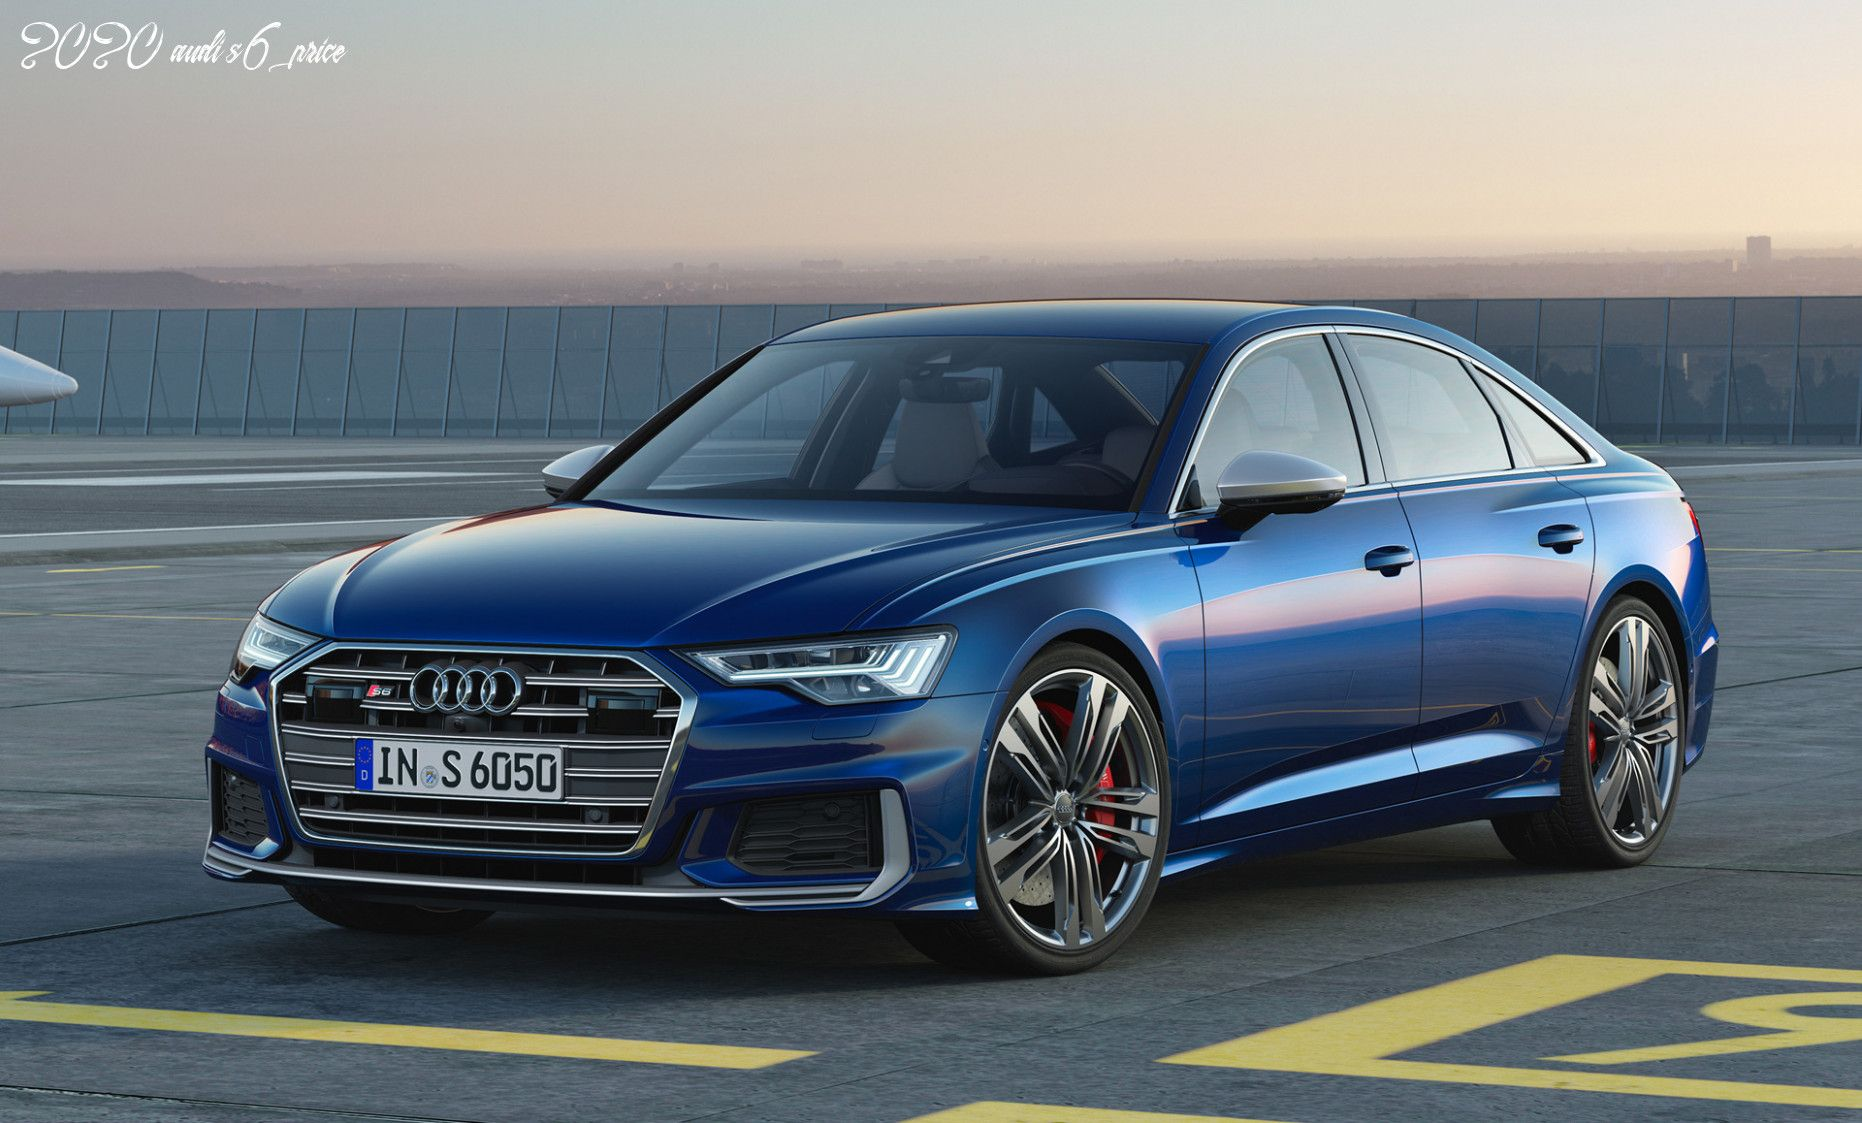 2020 Audi S6 Price In 2020 Audi S6 Audi Audi Cars